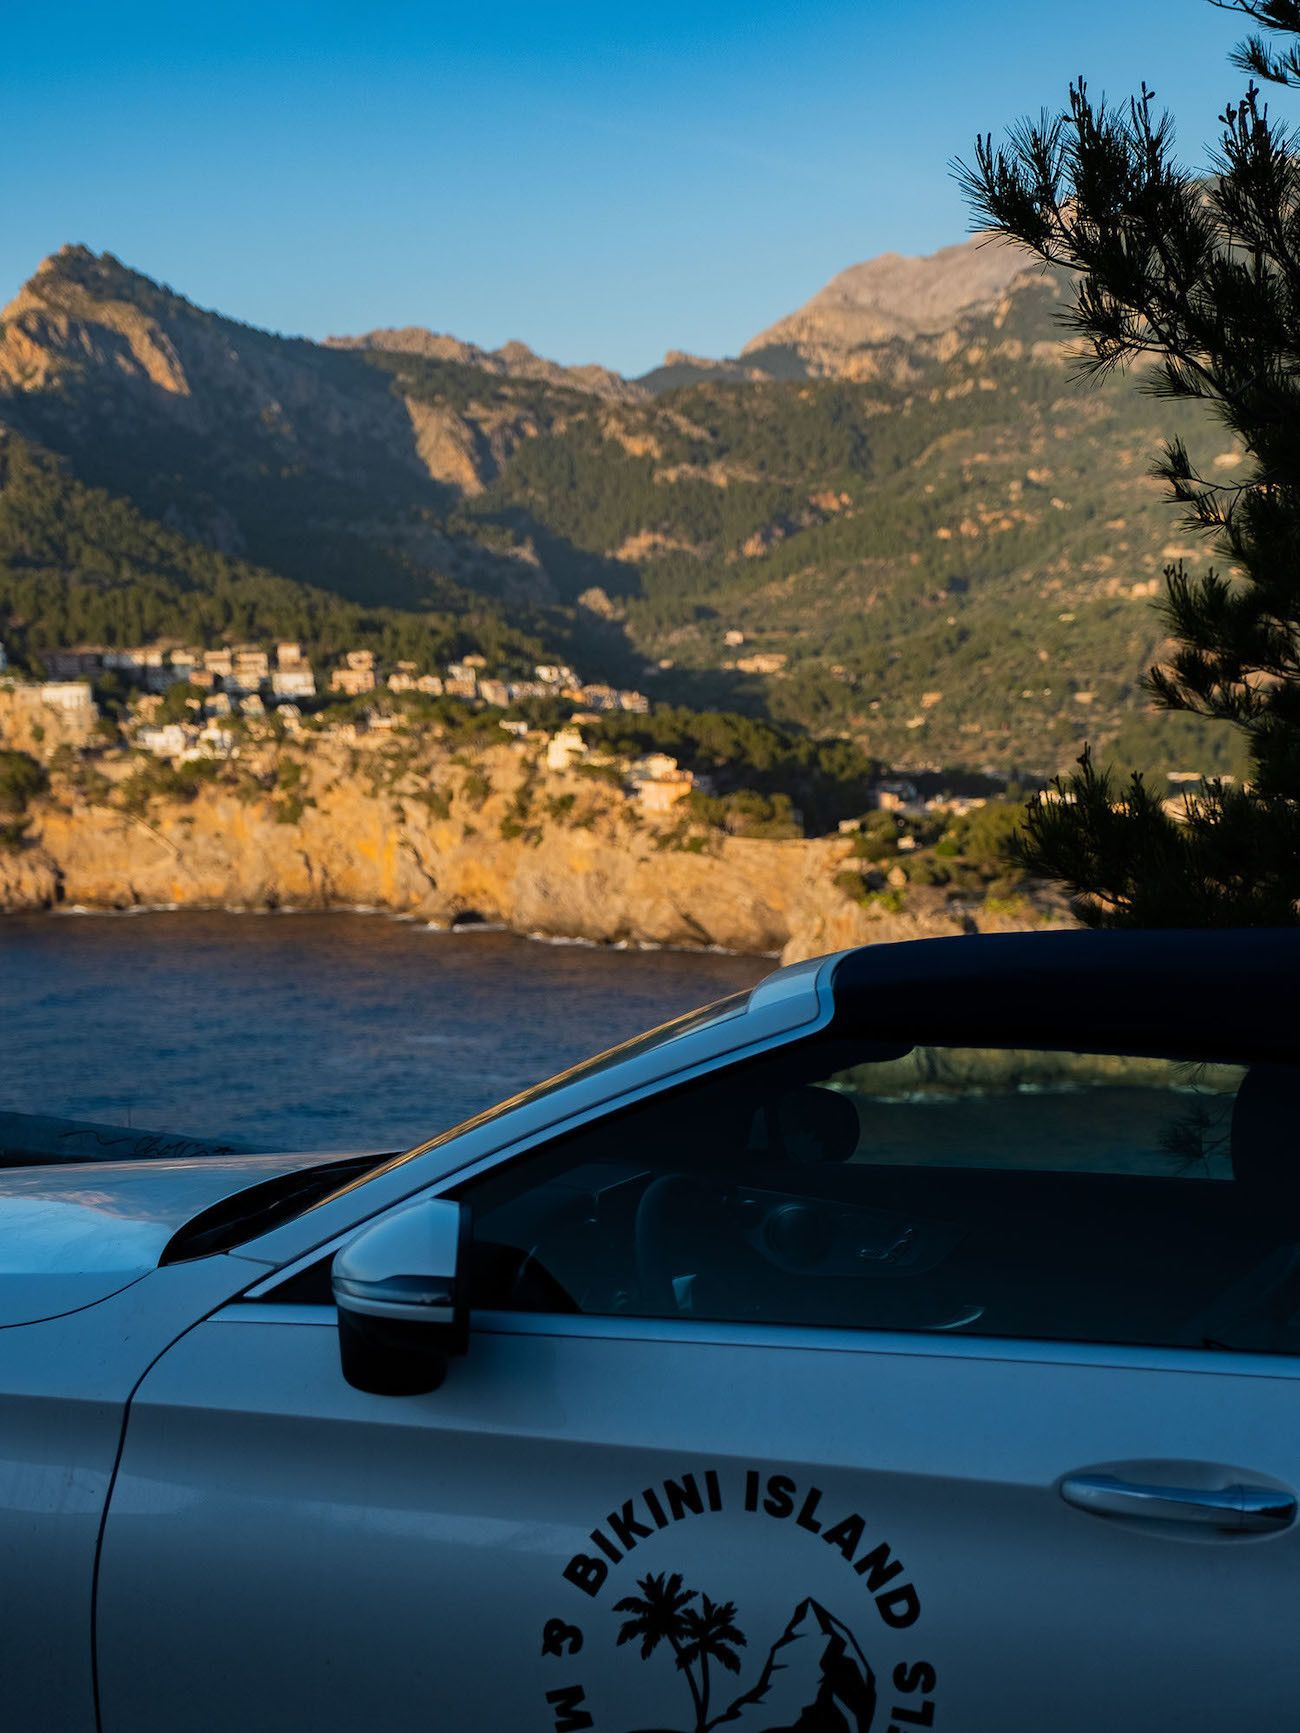 Foodblog About Fuel, Bikini Island & Mountain Hotels, Mercedes Benz, Port de Sóller